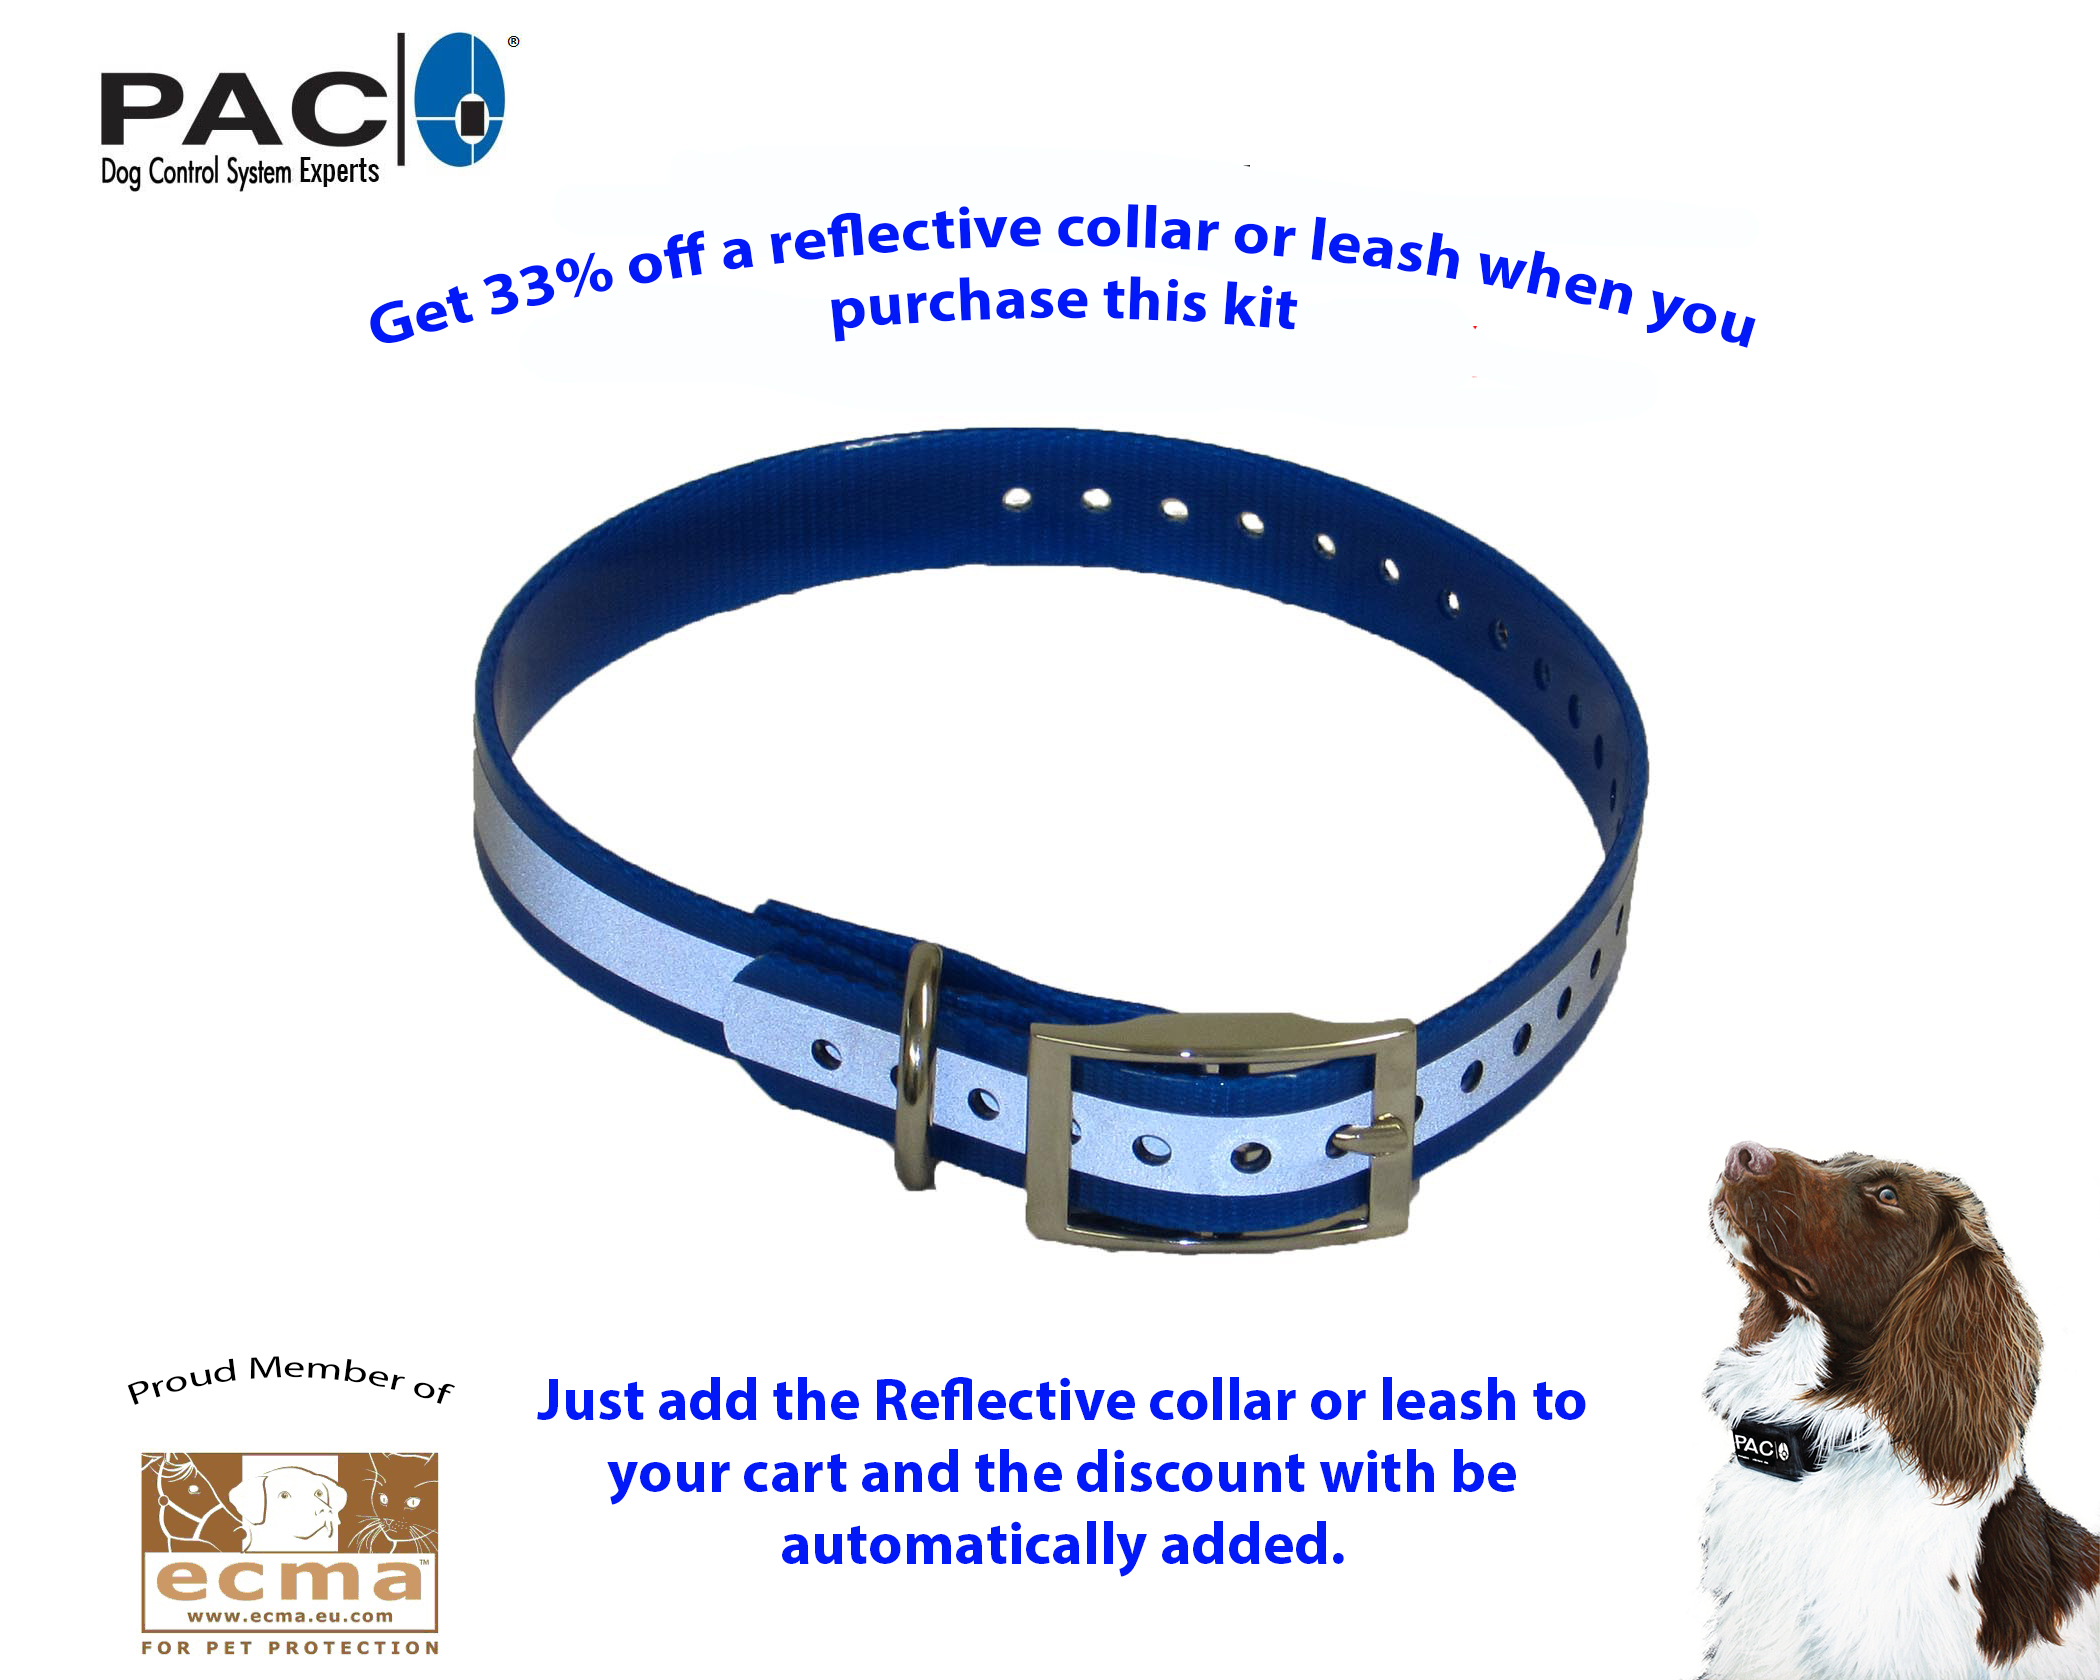 Reflective collar deal when buying a PAC Kit or Fence system